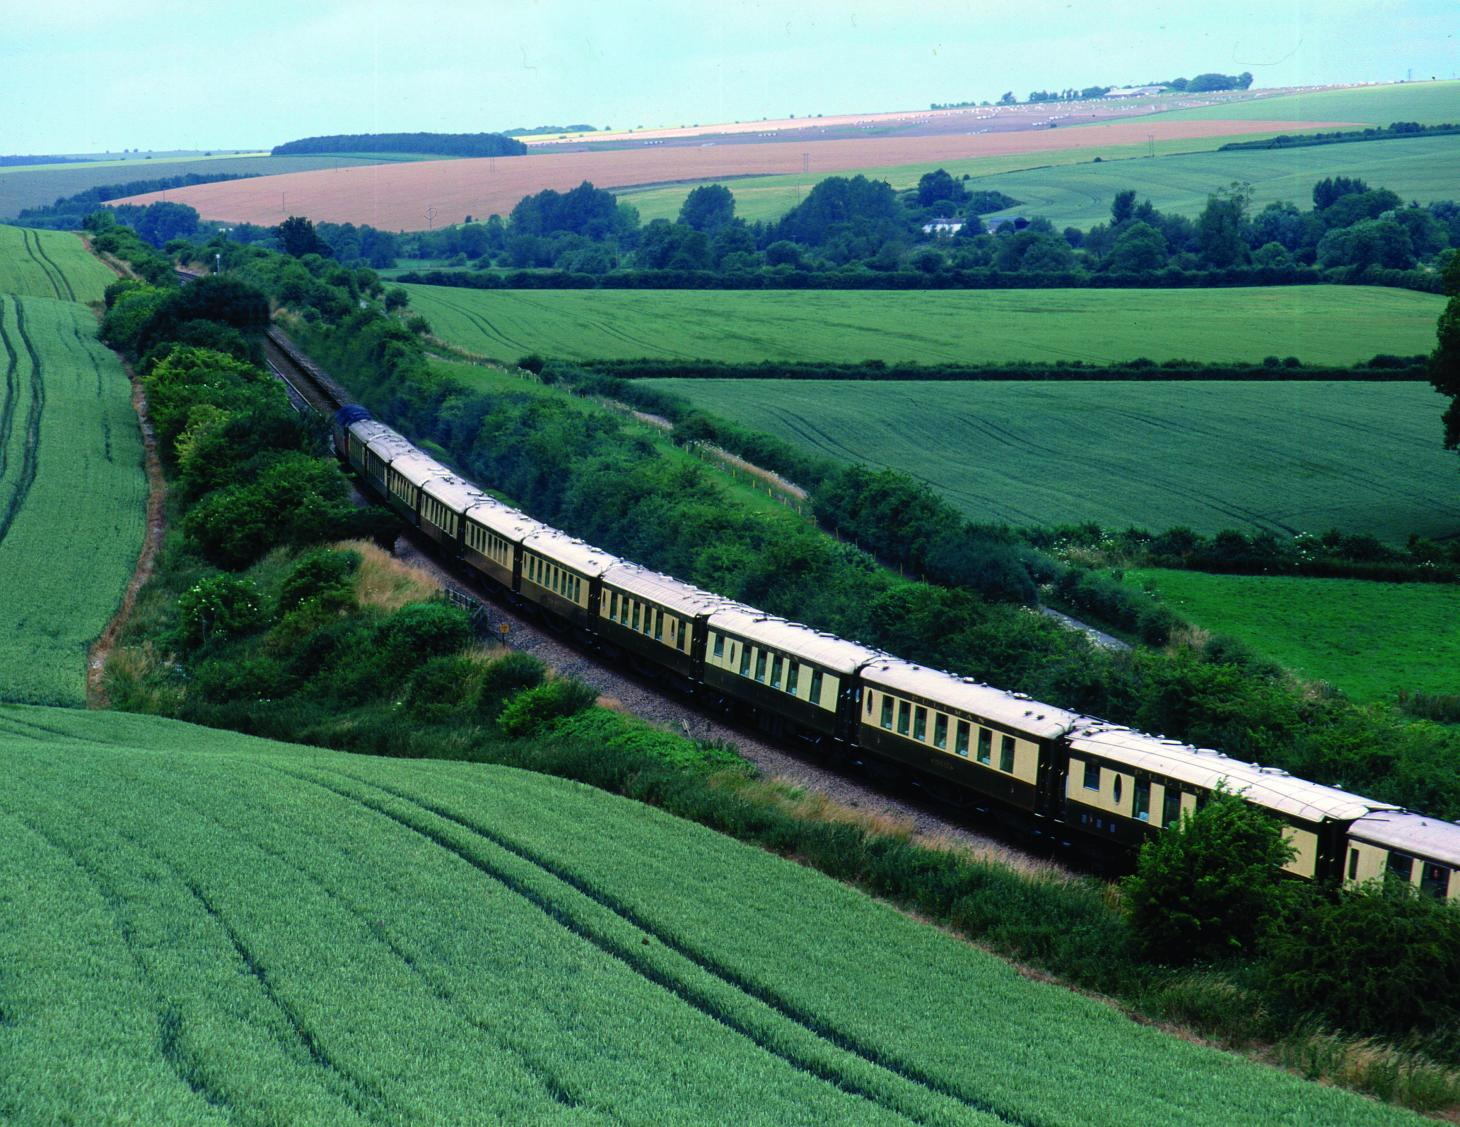 The Cygnus carriage is pulled by Belmond's British Pullman